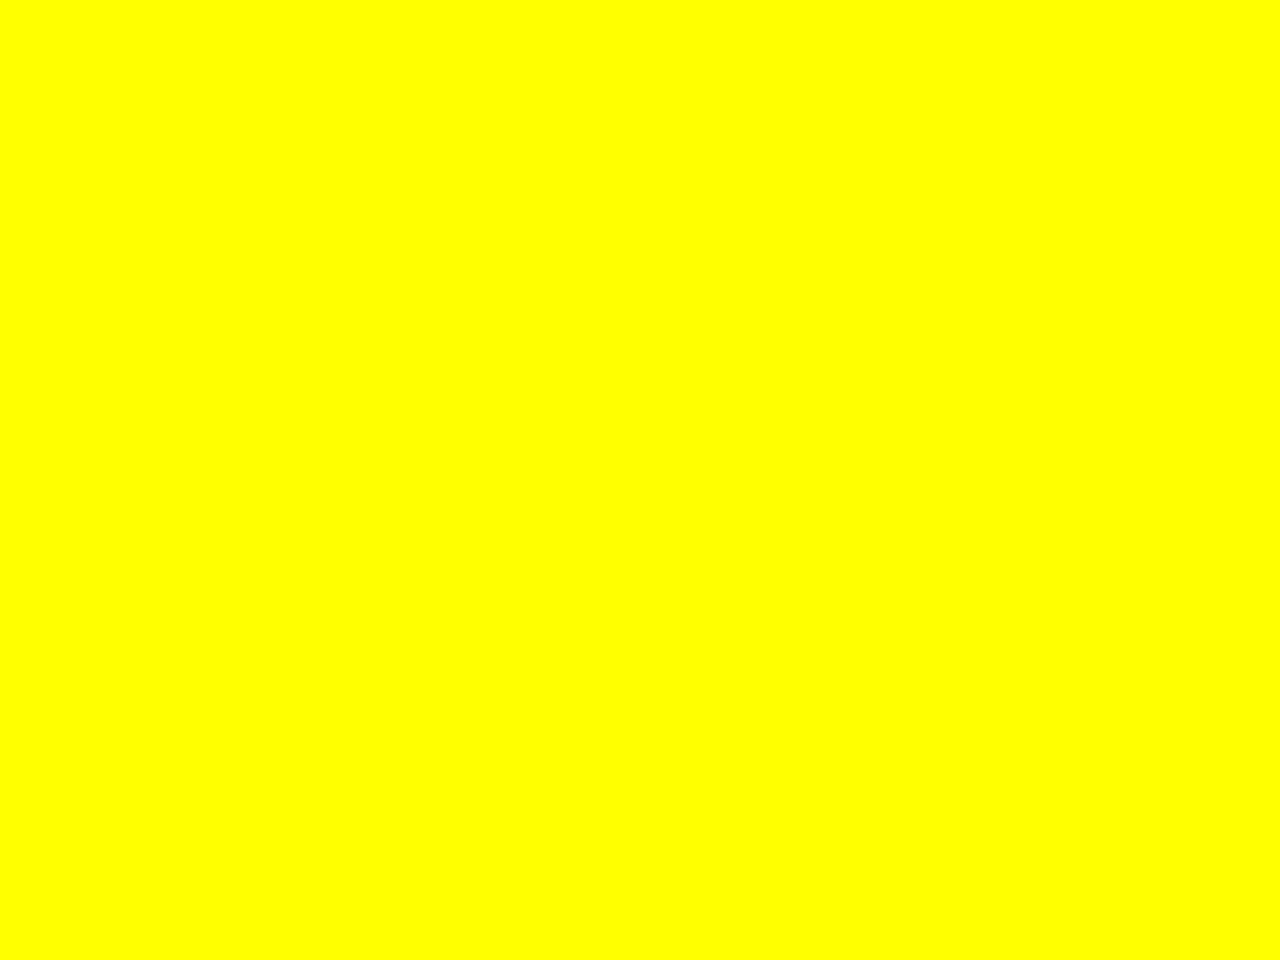 1280x960 Yellow Solid Color Background